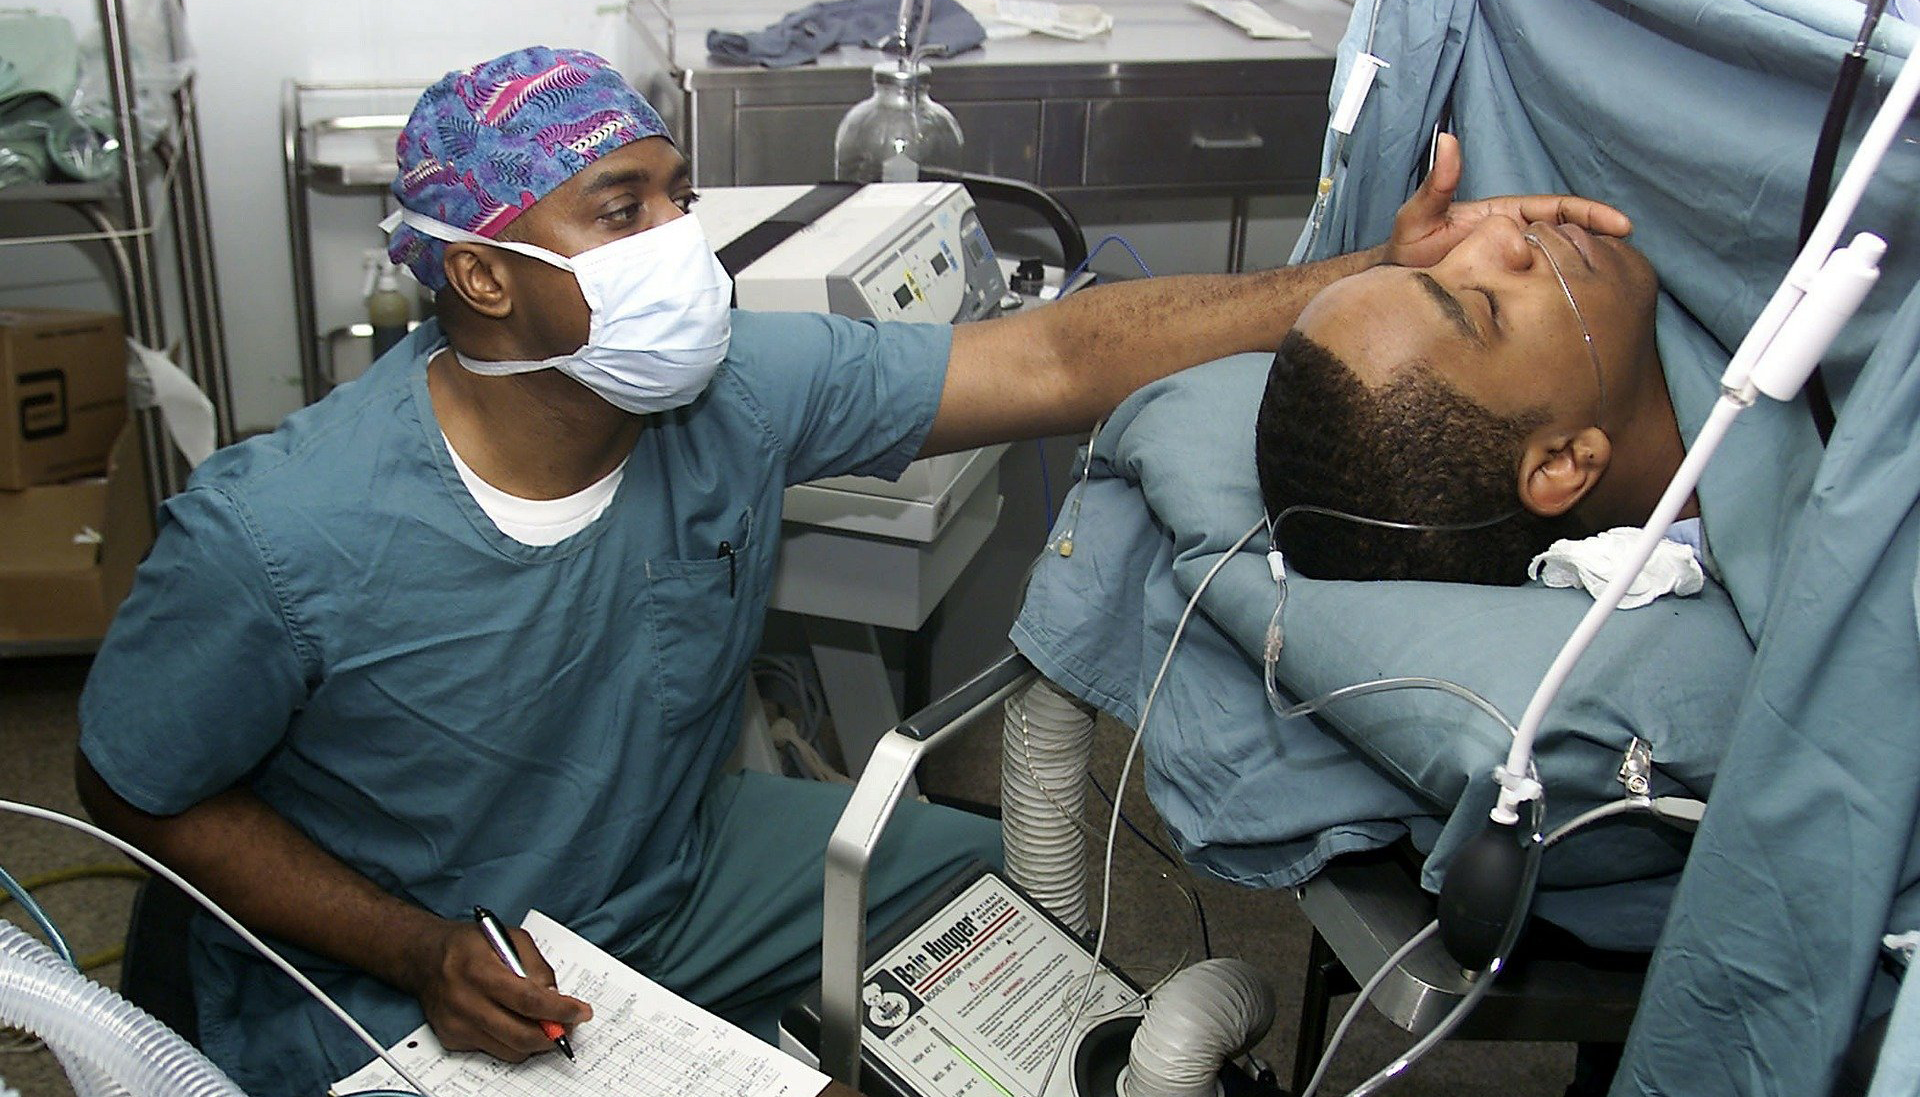 Anesthesiologist sitting by the head of a patient who is sedated in an operating room.